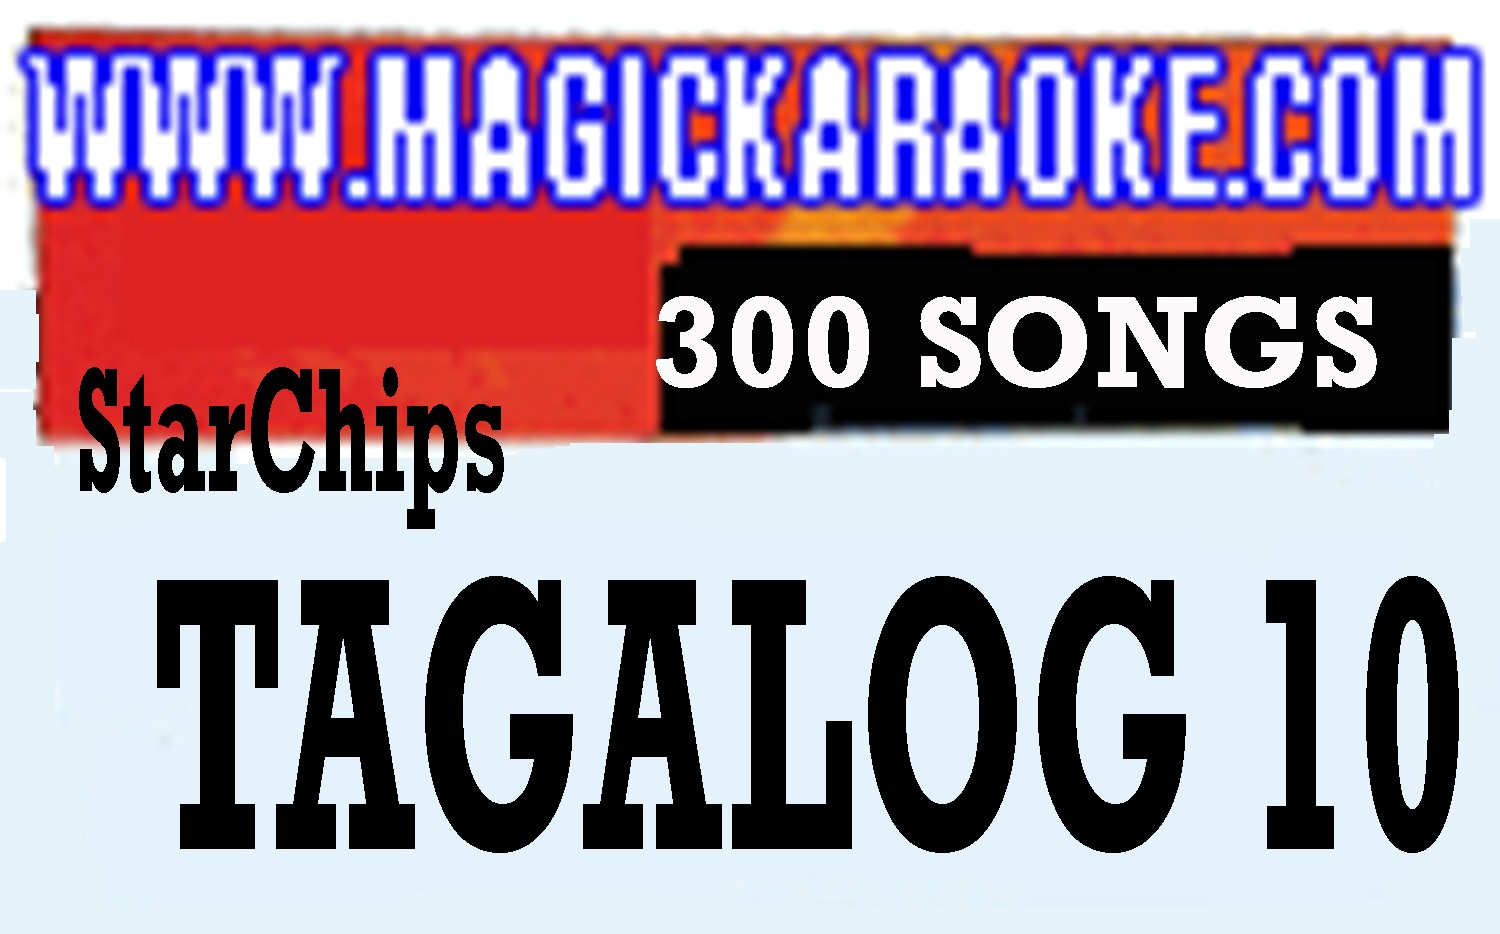 Magic Sing Tagalog 10 20 PINS SALE